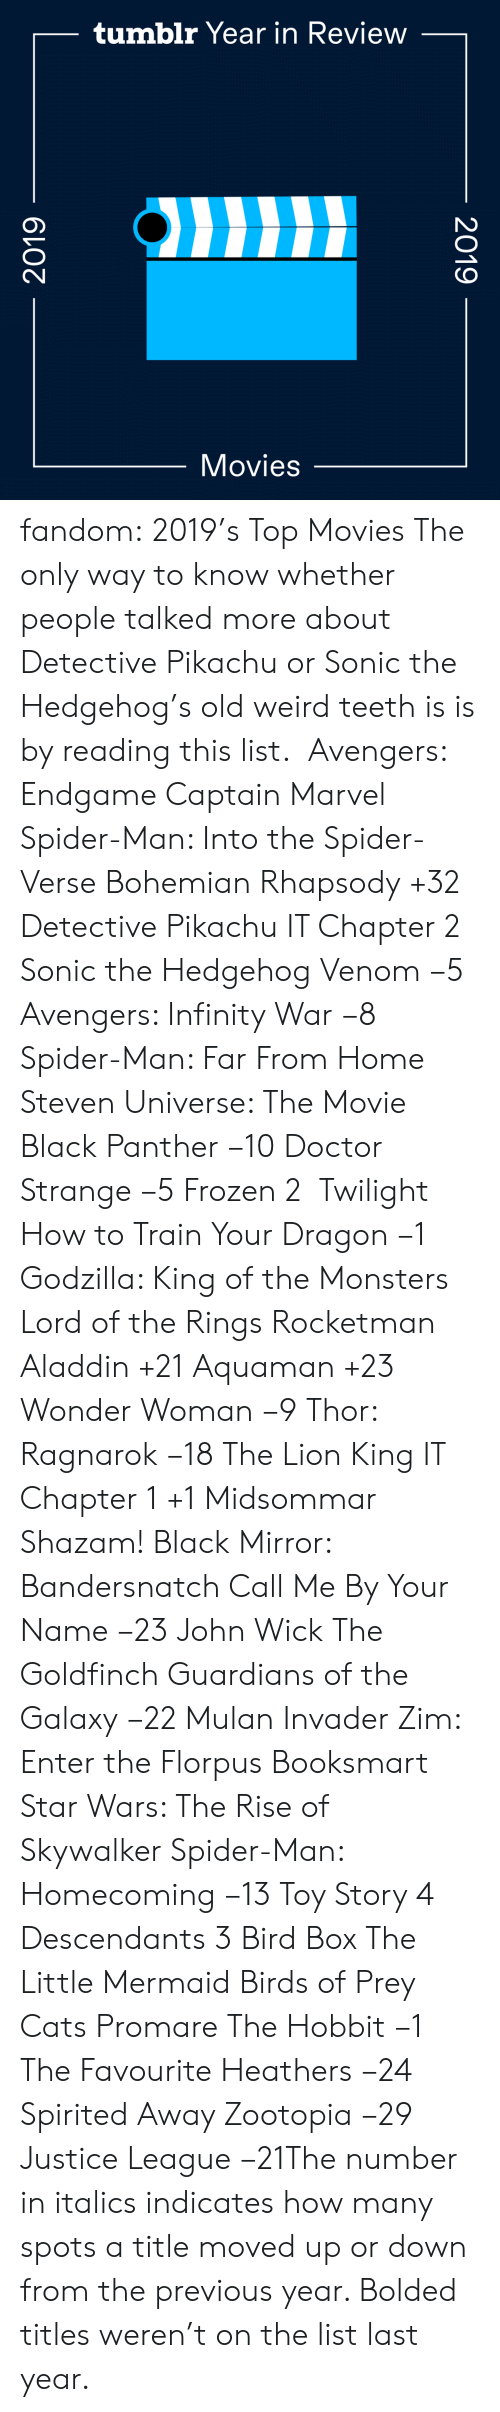 Sonic: tumblr Year in Review  Movies  2019  2019 fandom:  2019's Top Movies  The only way to know whether people talked more about Detective Pikachu or Sonic the Hedgehog's old weird teeth is is by reading this list.   Avengers: Endgame  Captain Marvel  Spider-Man: Into the Spider-Verse  Bohemian Rhapsody +32  Detective Pikachu  IT Chapter 2  Sonic the Hedgehog  Venom −5  Avengers: Infinity War −8  Spider-Man: Far From Home  Steven Universe: The Movie  Black Panther −10  Doctor Strange −5  Frozen 2   Twilight  How to Train Your Dragon −1  Godzilla: King of the Monsters  Lord of the Rings  Rocketman  Aladdin +21  Aquaman +23  Wonder Woman −9  Thor: Ragnarok −18  The Lion King  IT Chapter 1 +1  Midsommar  Shazam!  Black Mirror: Bandersnatch  Call Me By Your Name −23  John Wick  The Goldfinch  Guardians of the Galaxy −22  Mulan  Invader Zim: Enter the Florpus  Booksmart  Star Wars: The Rise of Skywalker  Spider-Man: Homecoming −13  Toy Story 4  Descendants 3  Bird Box  The Little Mermaid  Birds of Prey  Cats  Promare  The Hobbit −1  The Favourite  Heathers −24  Spirited Away  Zootopia −29 Justice League −21The number in italics indicates how many spots a title moved up or down from the previous year. Bolded titles weren't on the list last year.